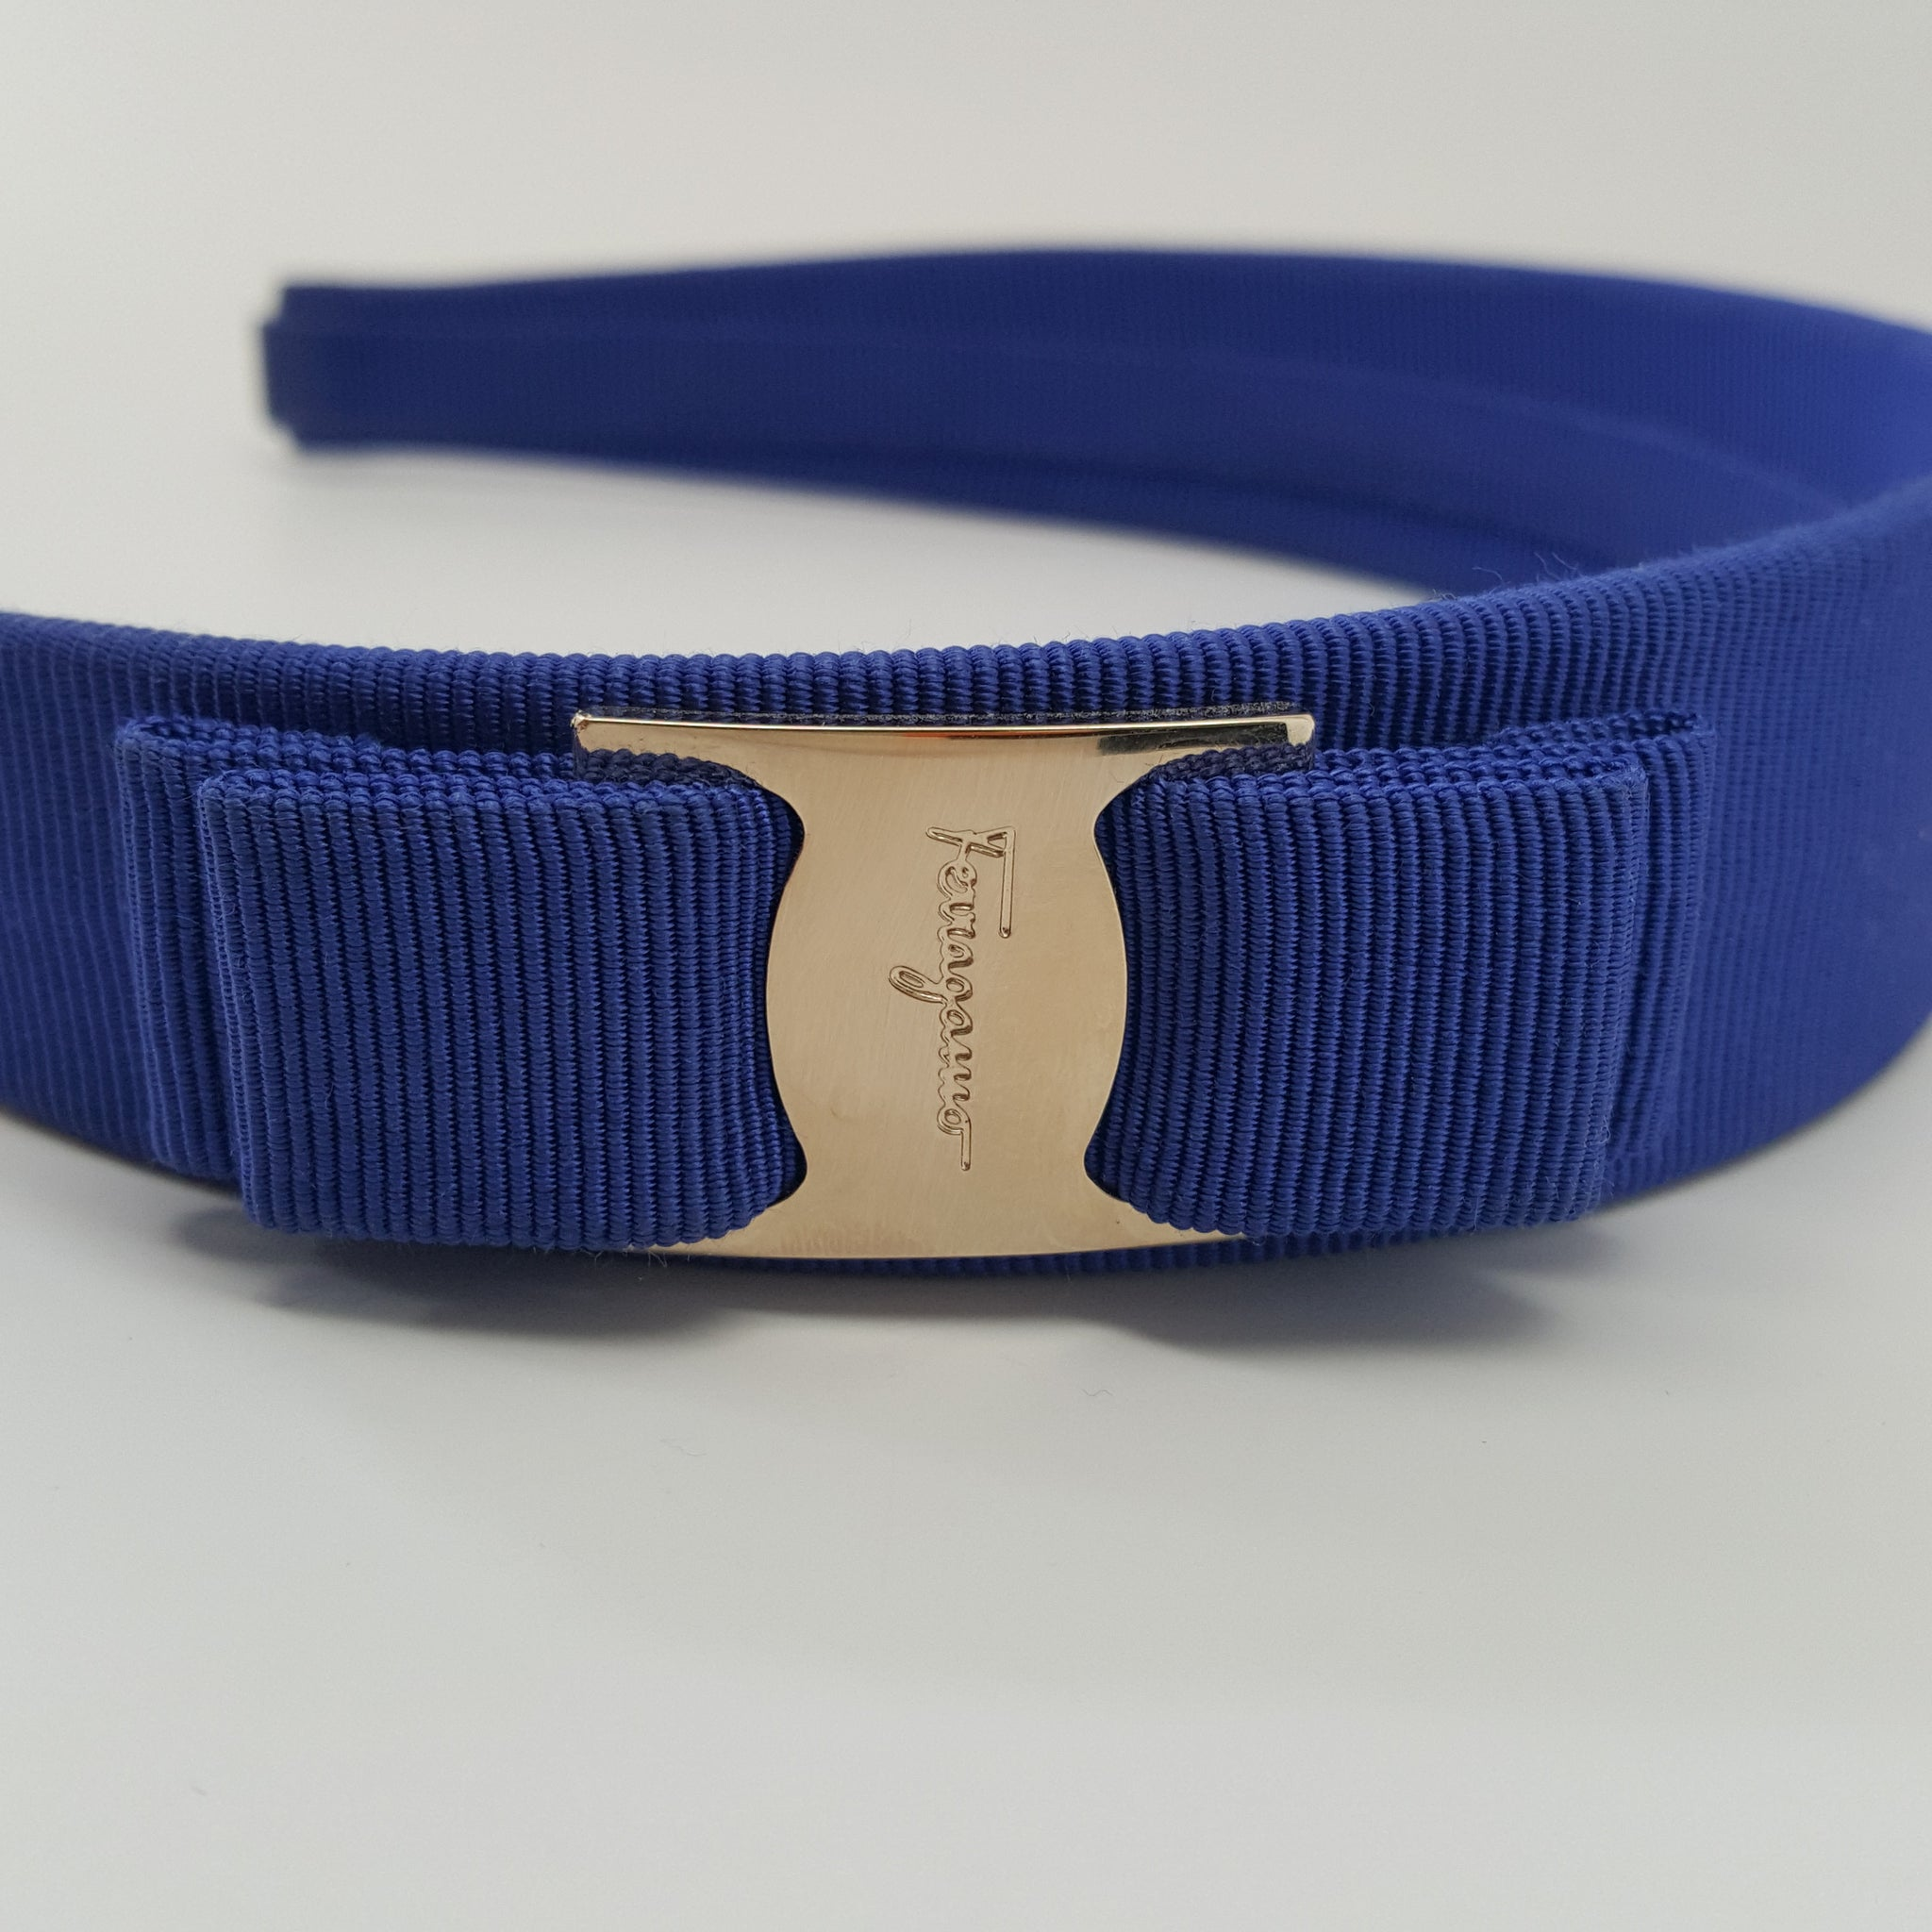 SALVATORE FERRAGAMO VARA HEADBAND - BLUE - ONE SIZE